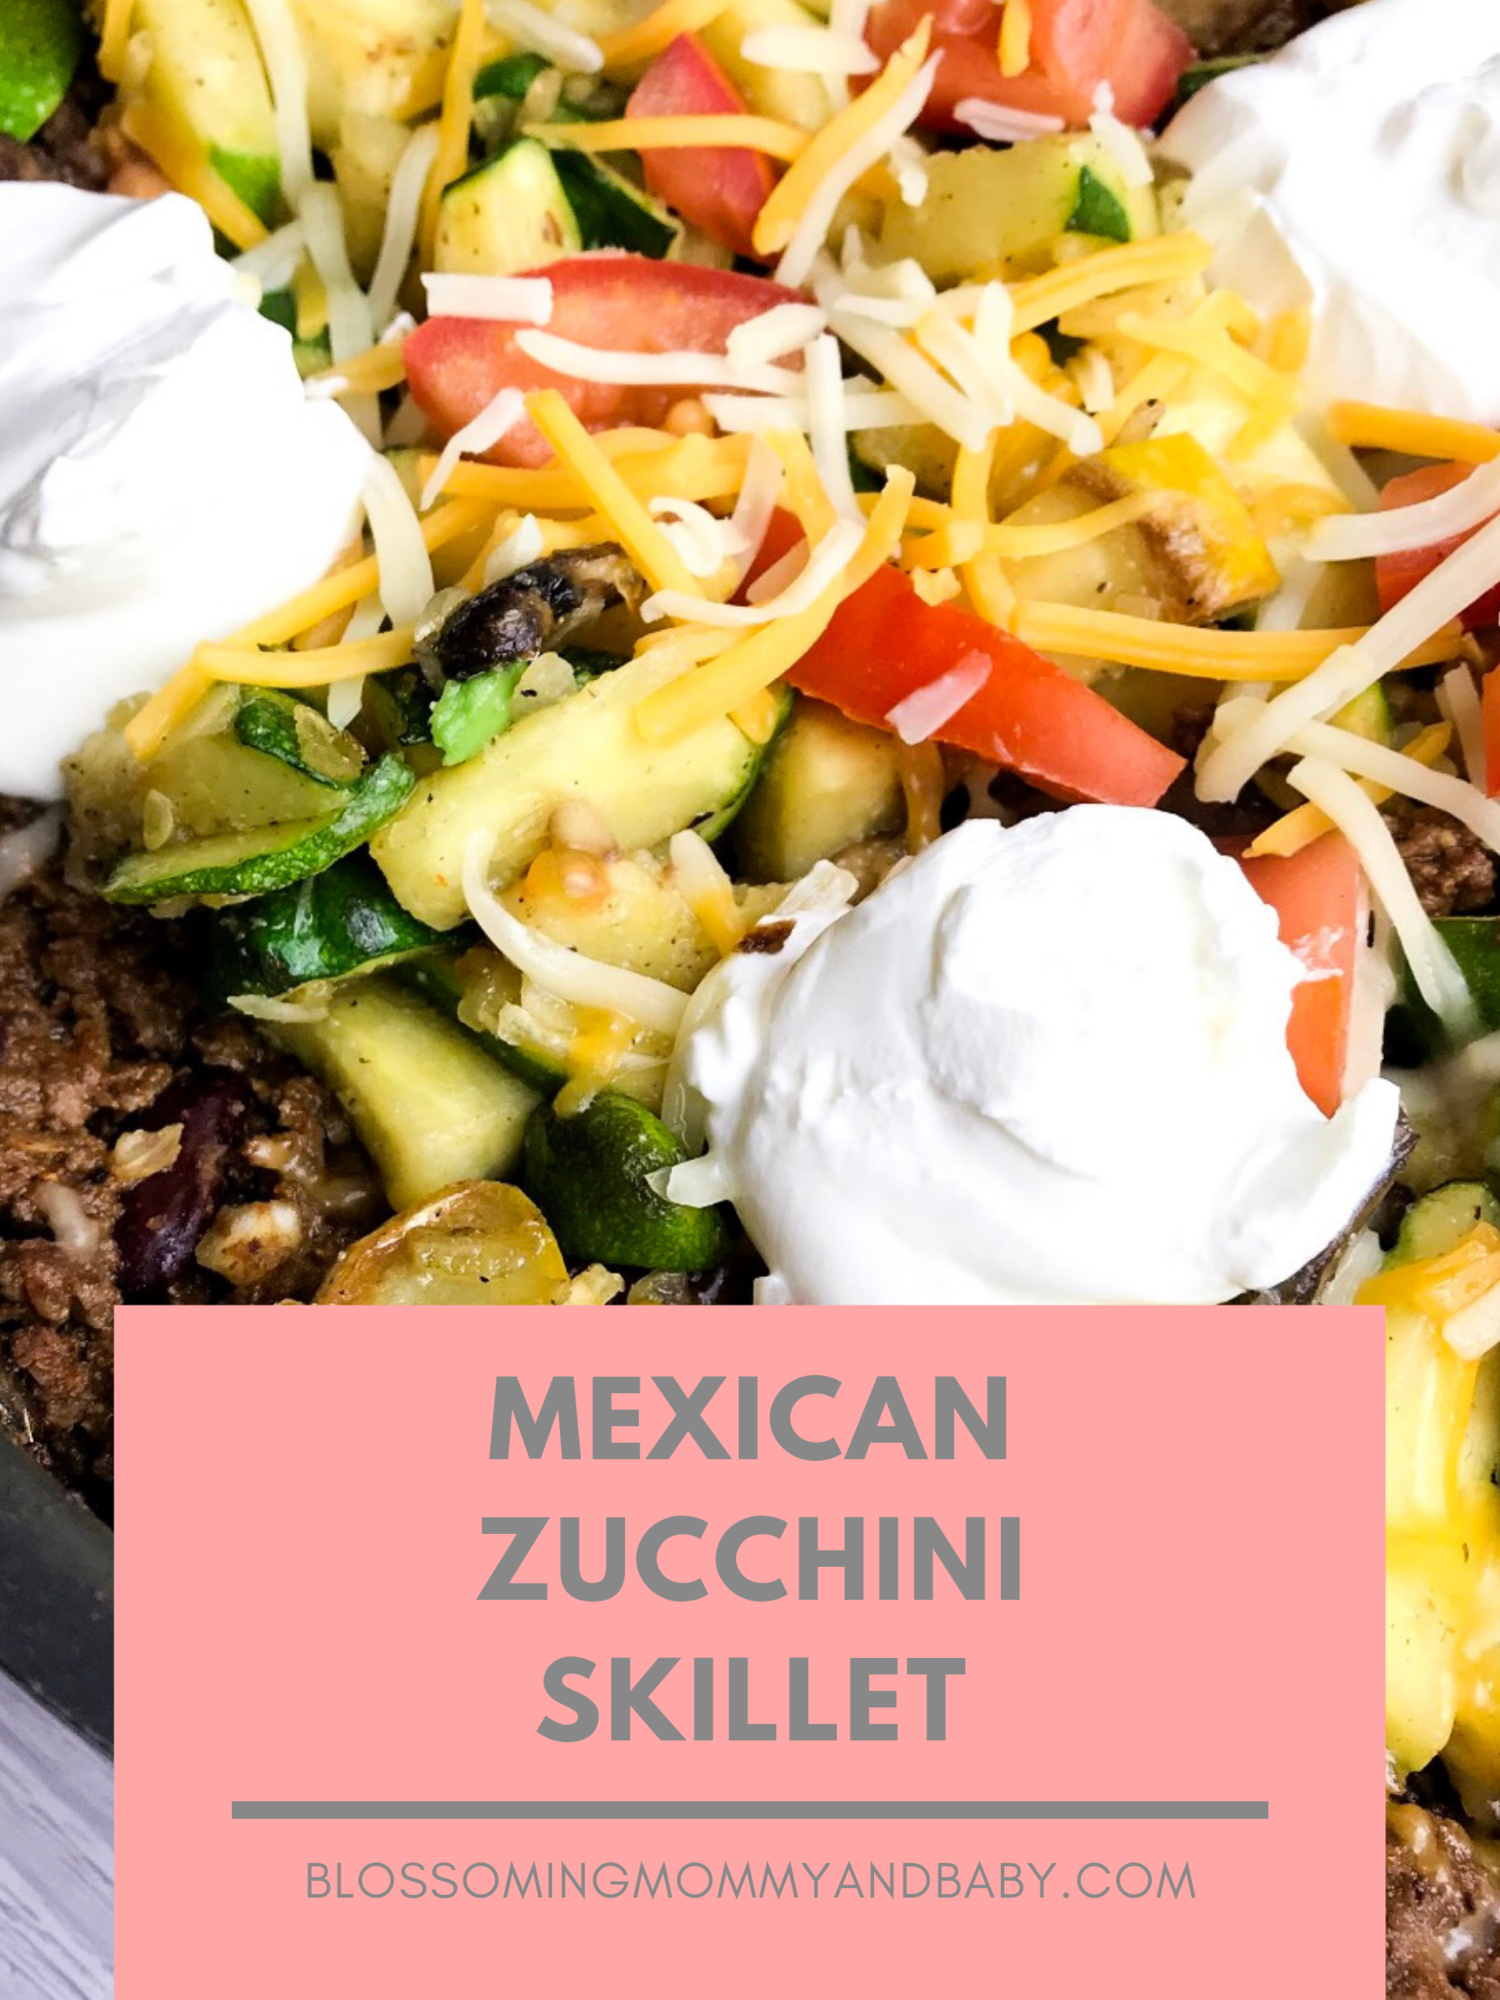 Mexican+Zucchini+Skillet.png